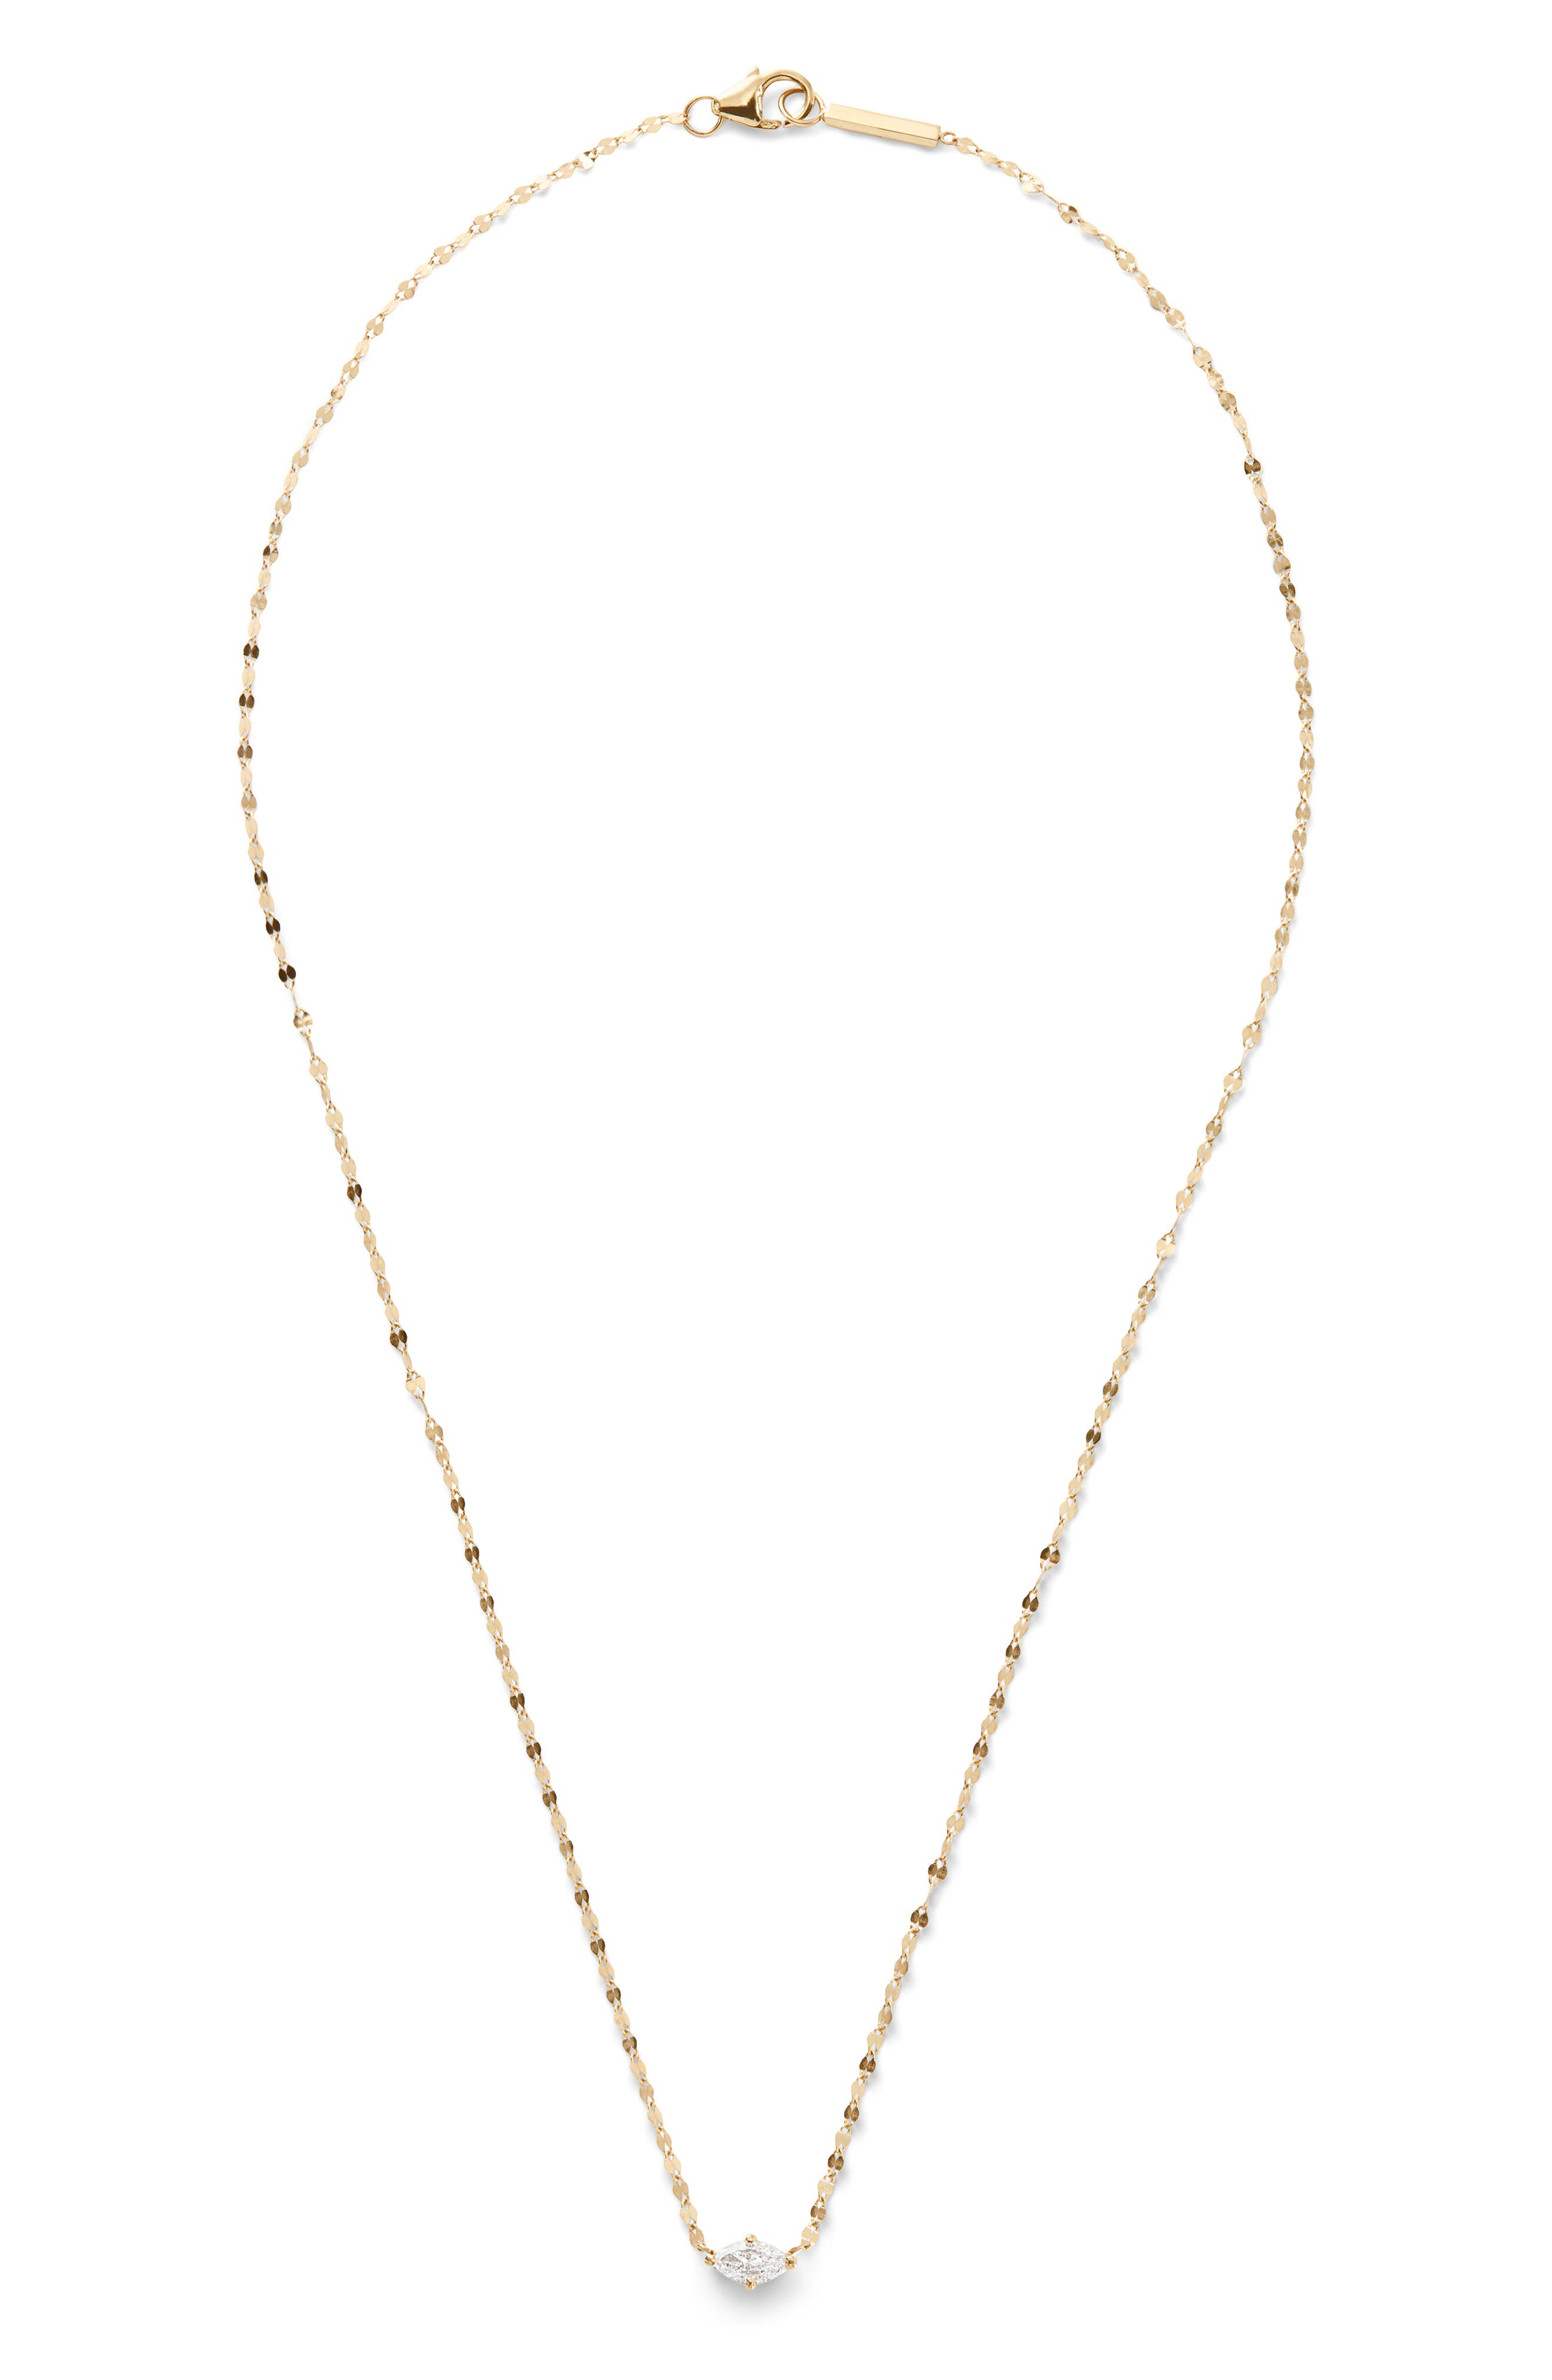 Marquise Diamond Chain Necklace,                         Main,                         color, GOLD